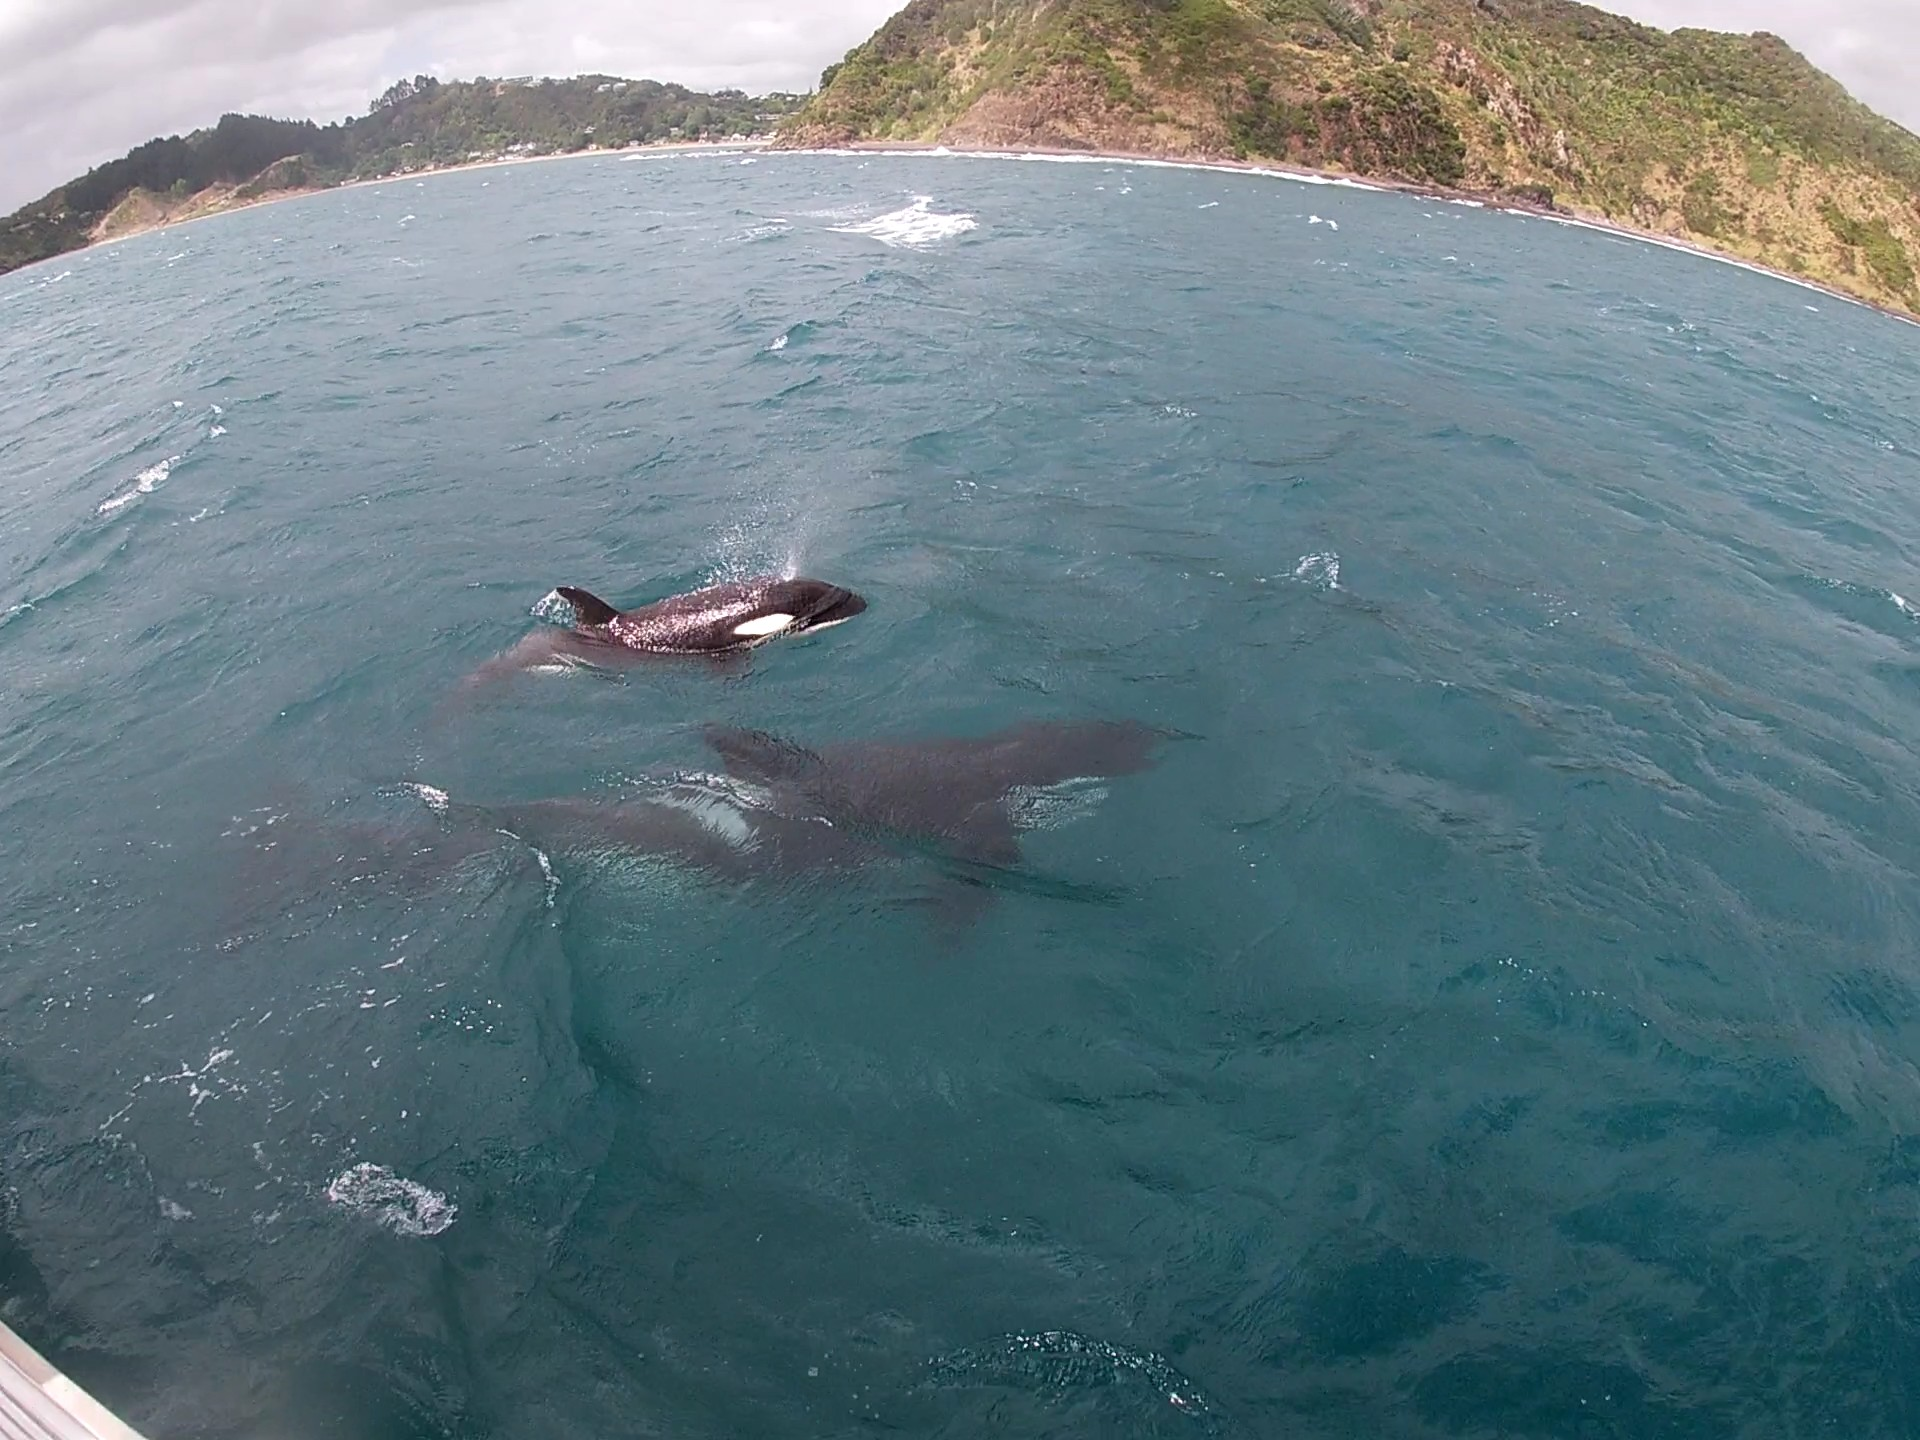 You are currently viewing Segeltrip mit Orcas in den Bay of Islands und der letzte Tag in Neuseeland [NZ]